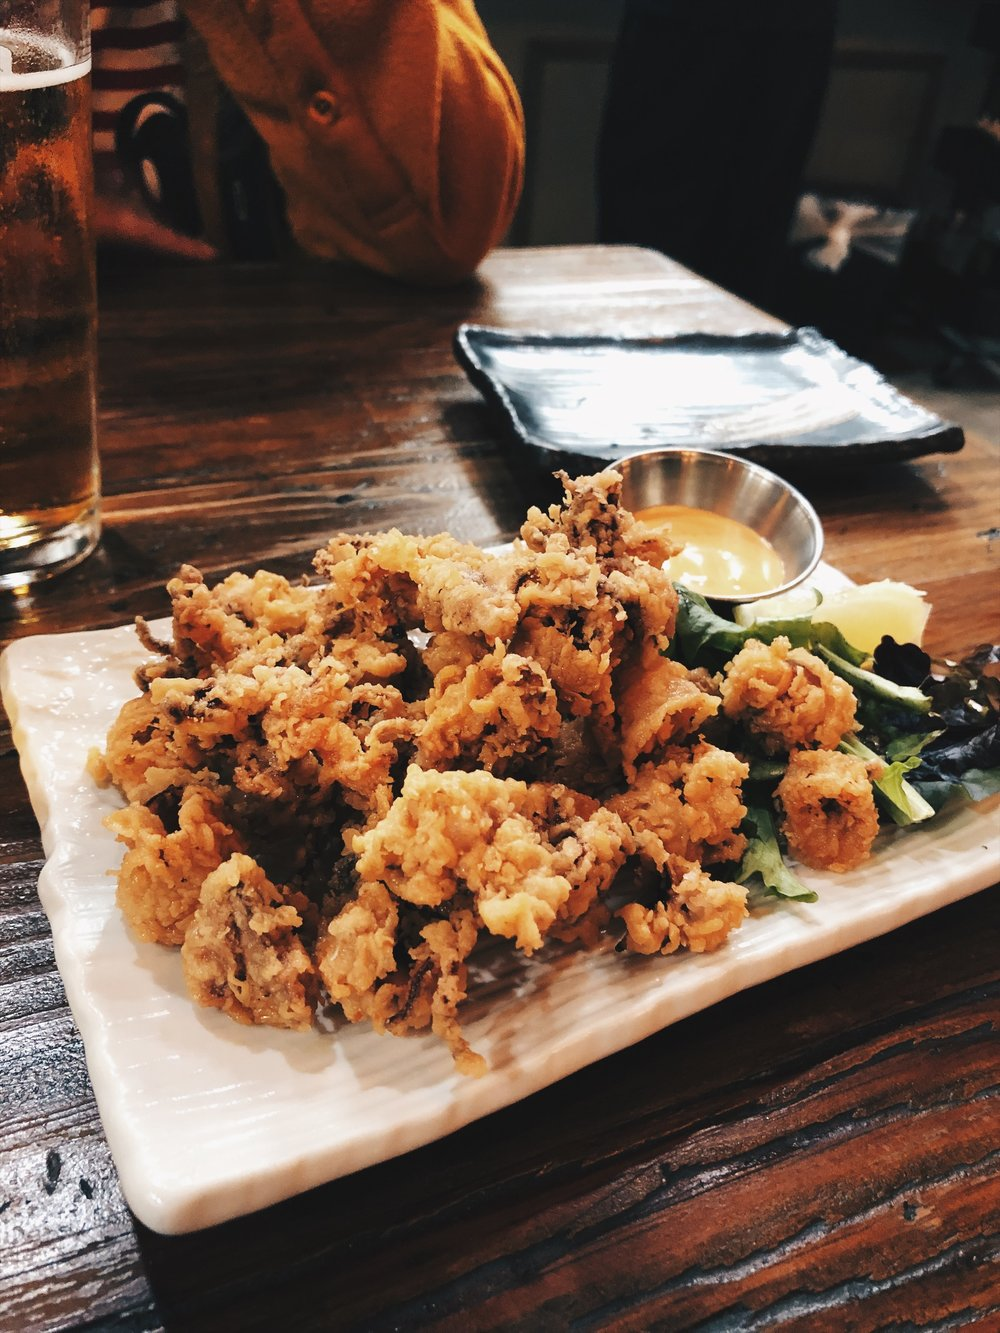 Fried calamari. Any place that serves great Calamari I'll forever fucks with them.